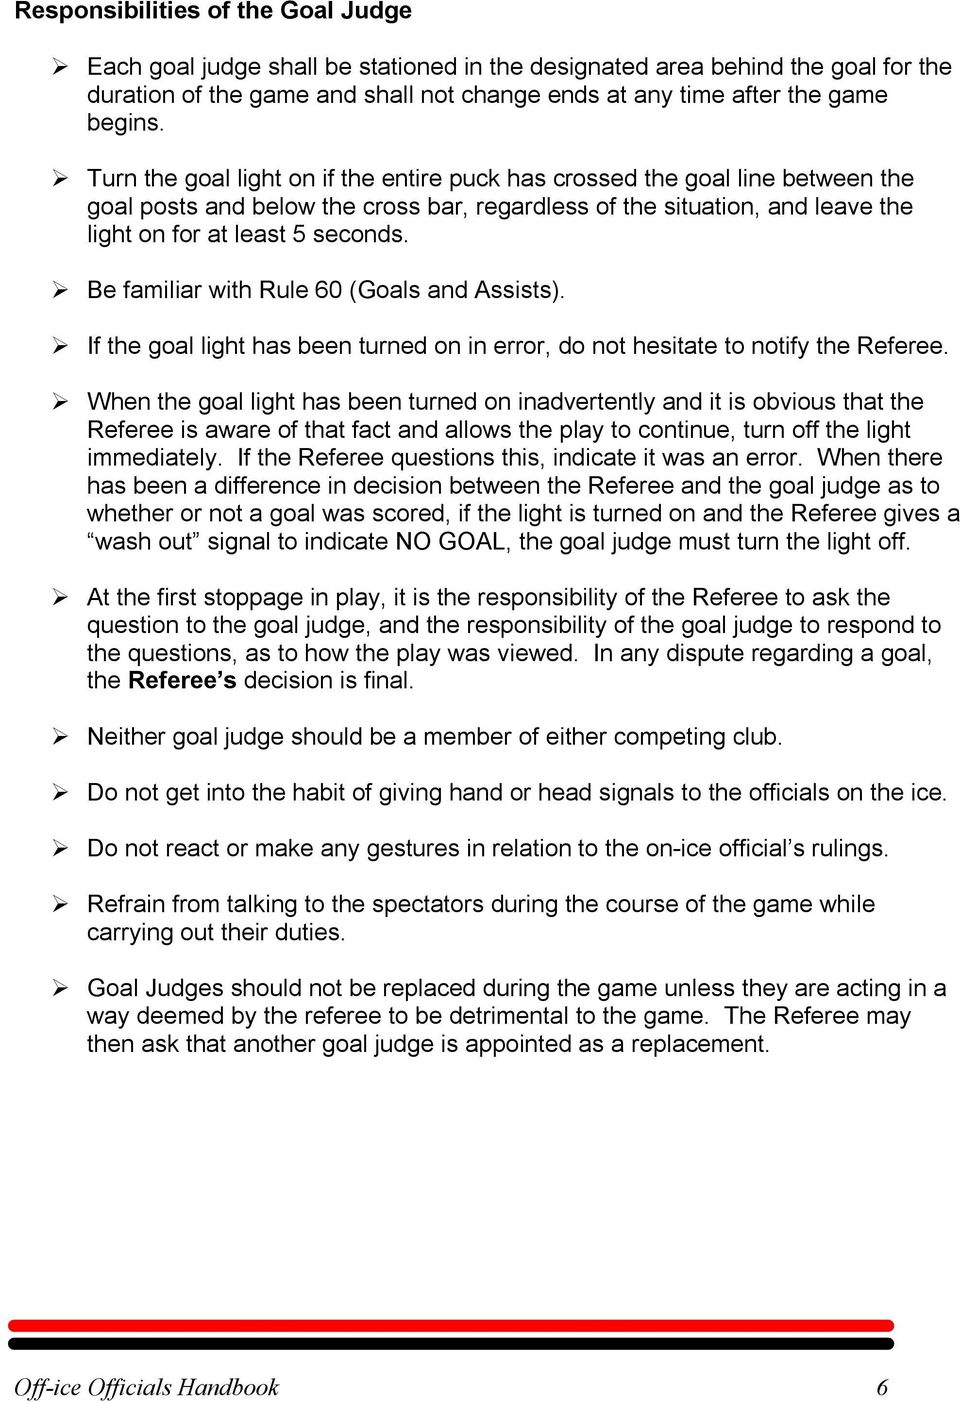 Be familiar with Rule 60 (Goals and Assists). If the goal light has been turned on in error, do not hesitate to notify the Referee.